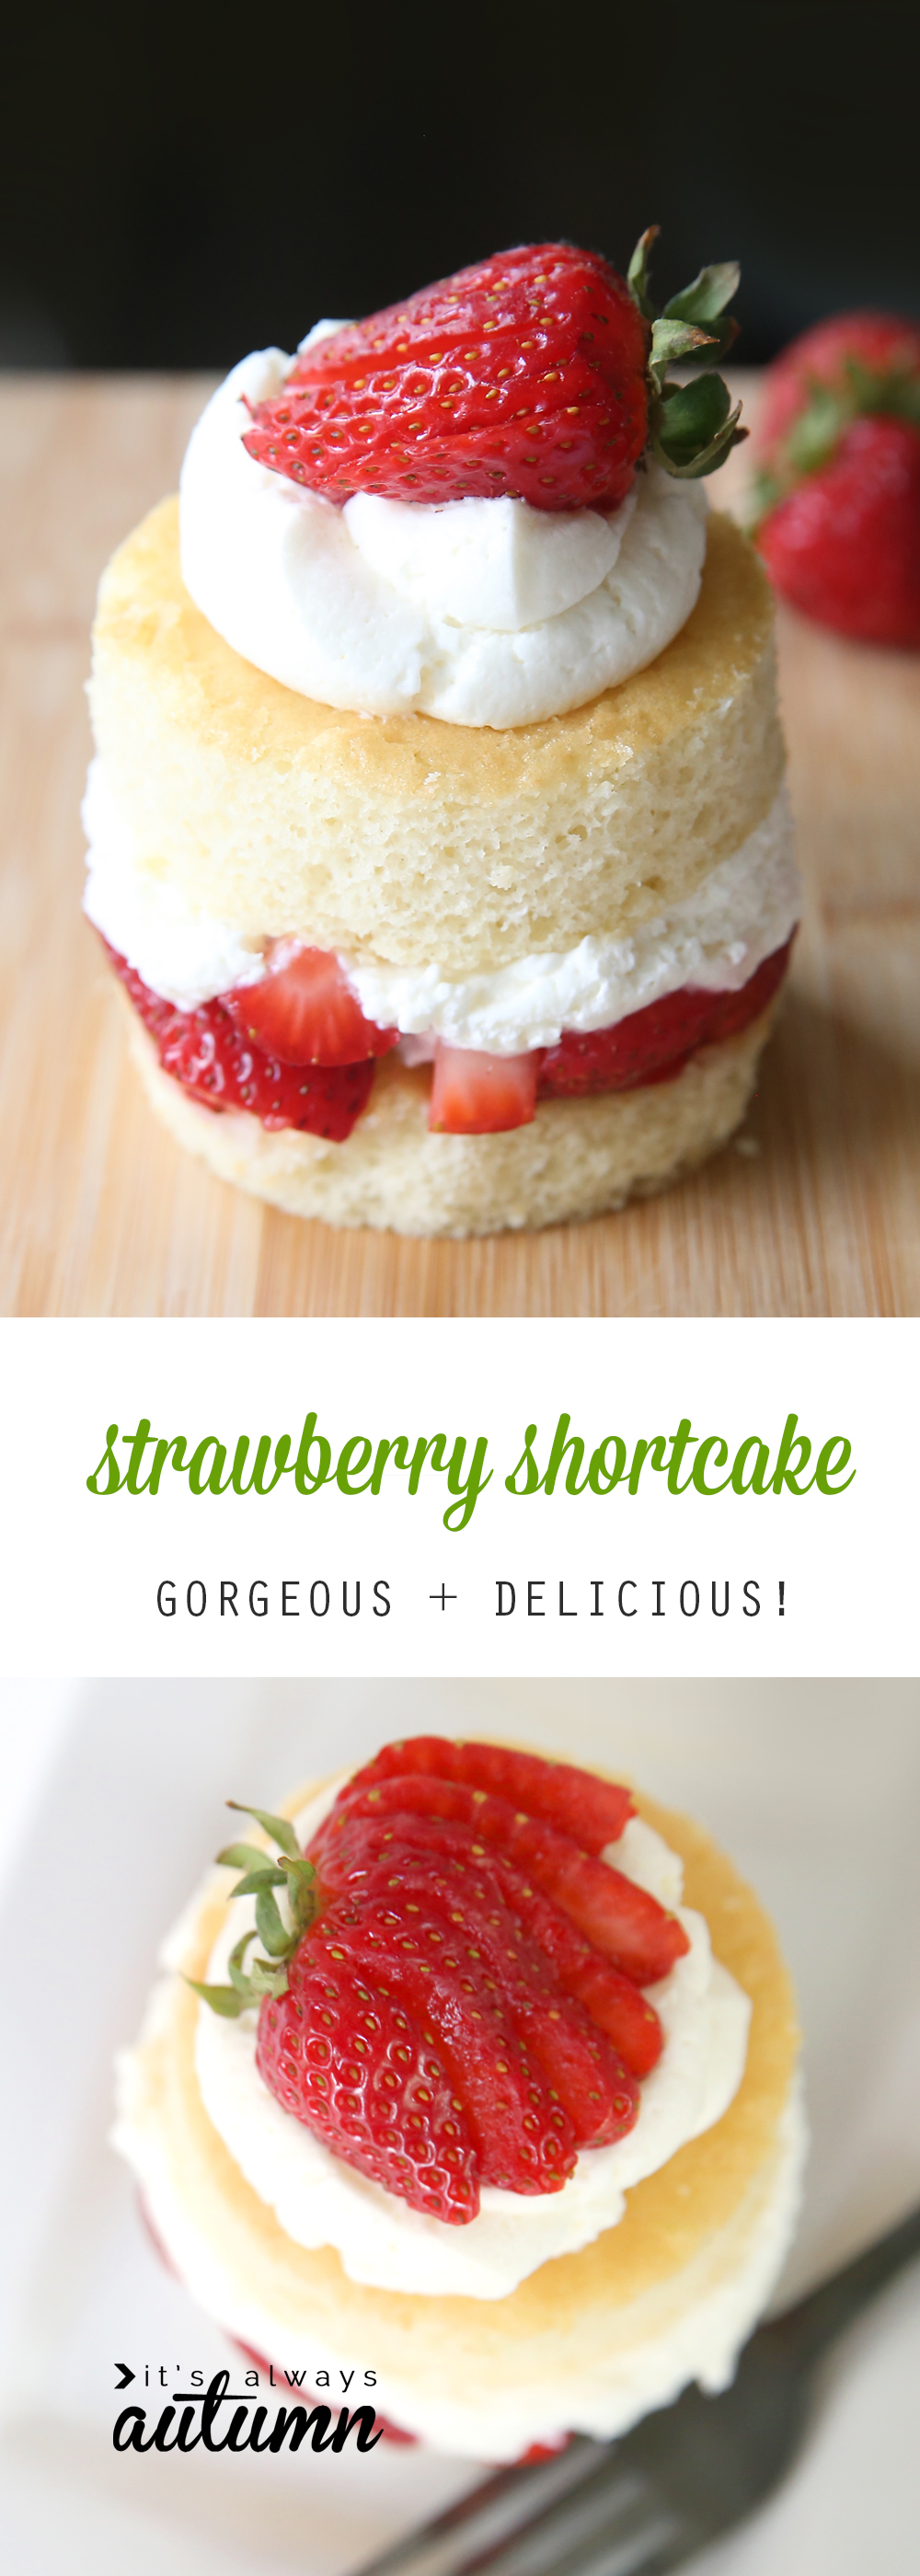 A close up of a round piece of layered strawberry shortcake